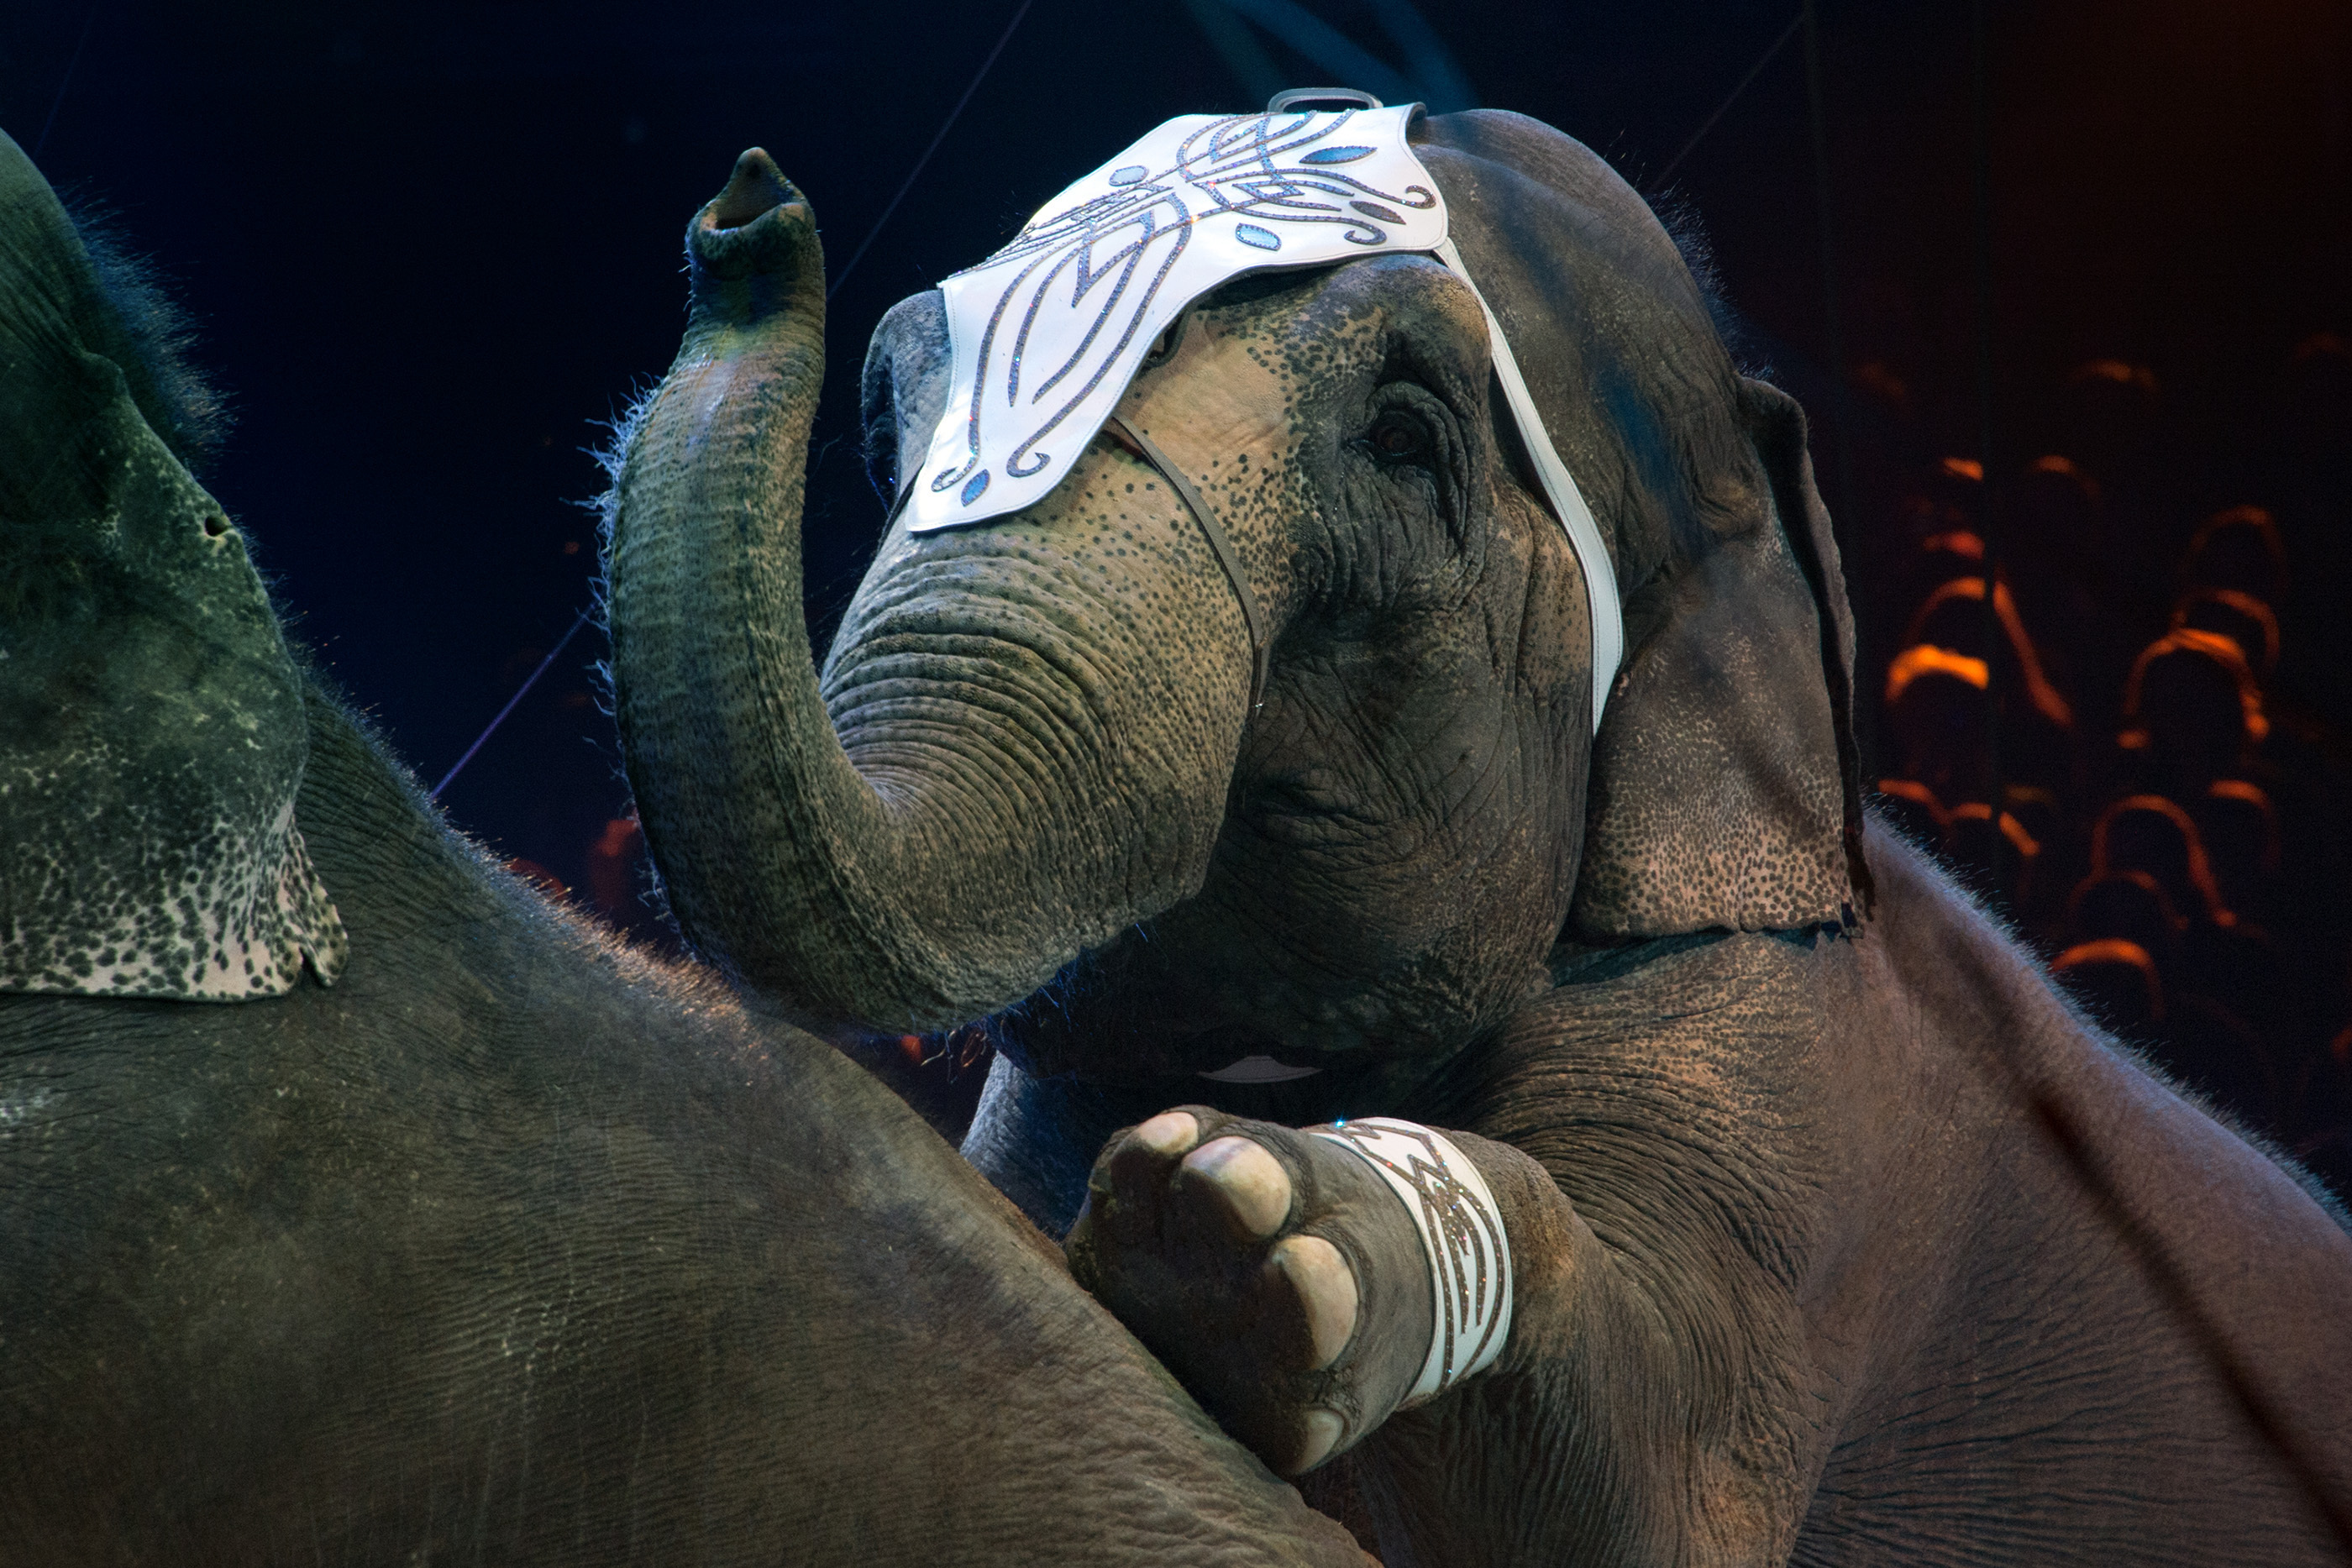 Scotland has now passed new legislation that bans the use of all wild animals in circuses and traveling entertainment shows.